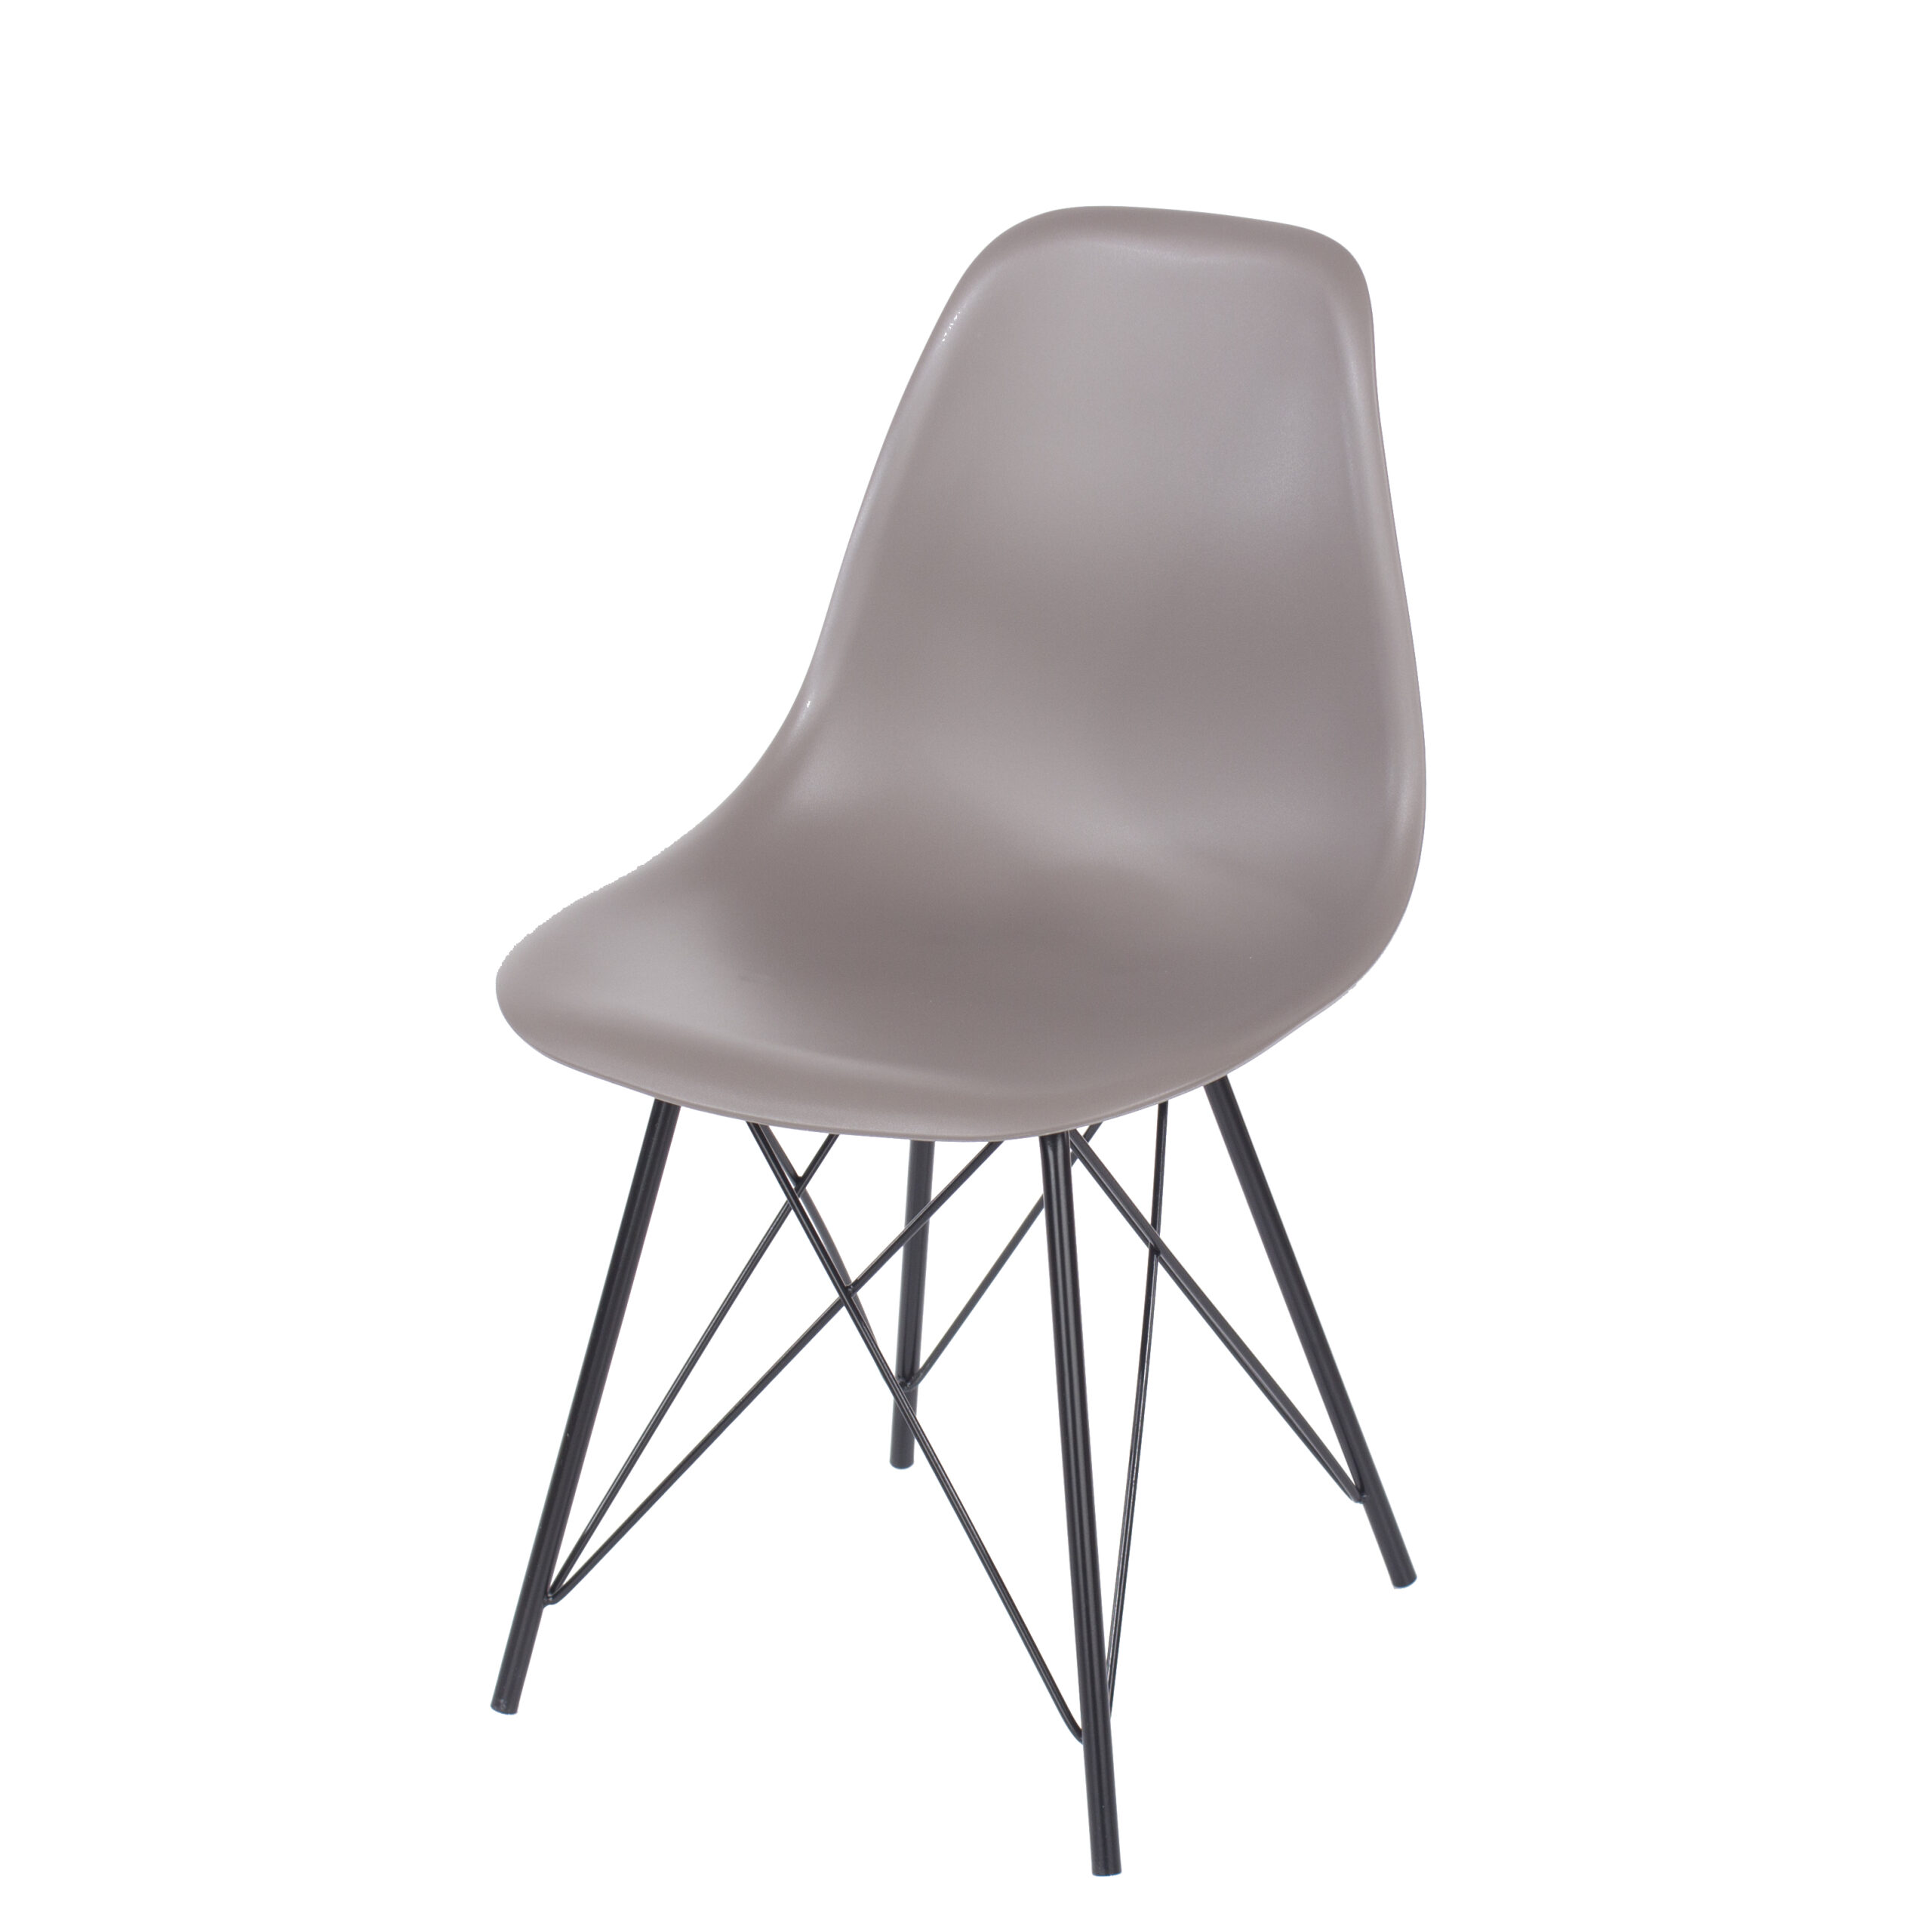 Penny truffle plastic chairs with black metal legs (pair)